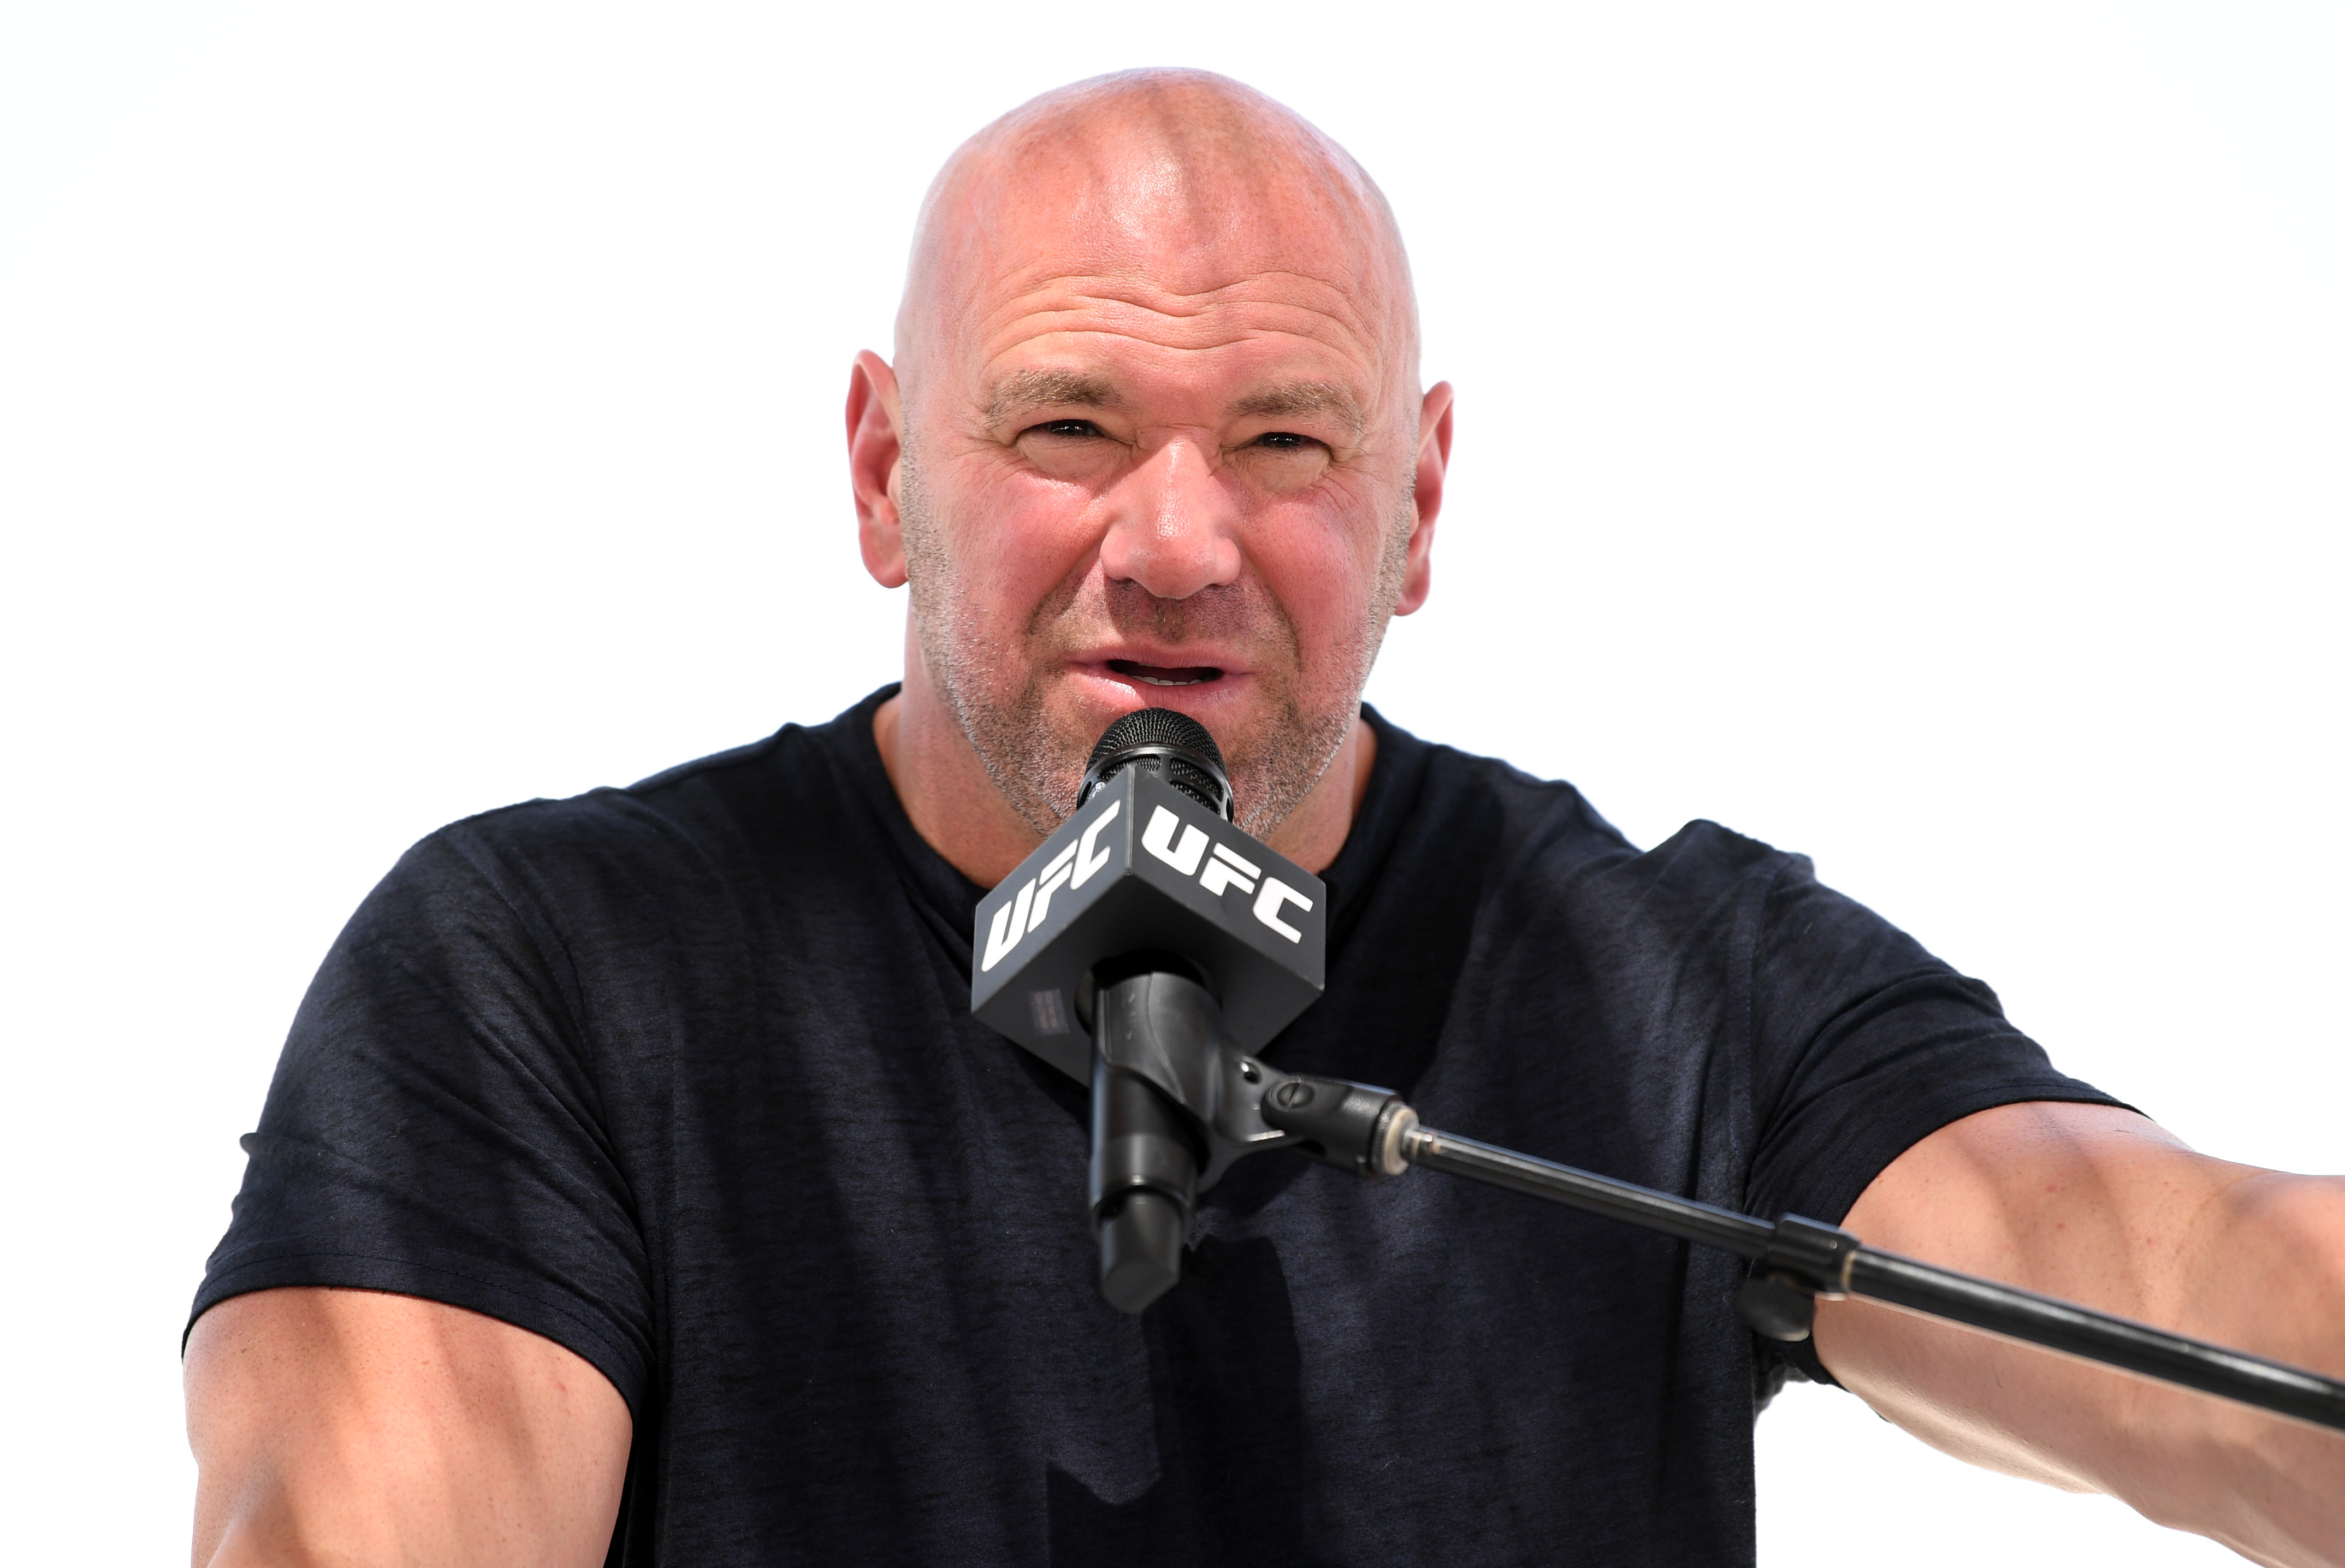 Dana White Just Responded to His $10 Million Sex Tape Lawsuit: 'I Can Get Rid of These Scumbags Forever'